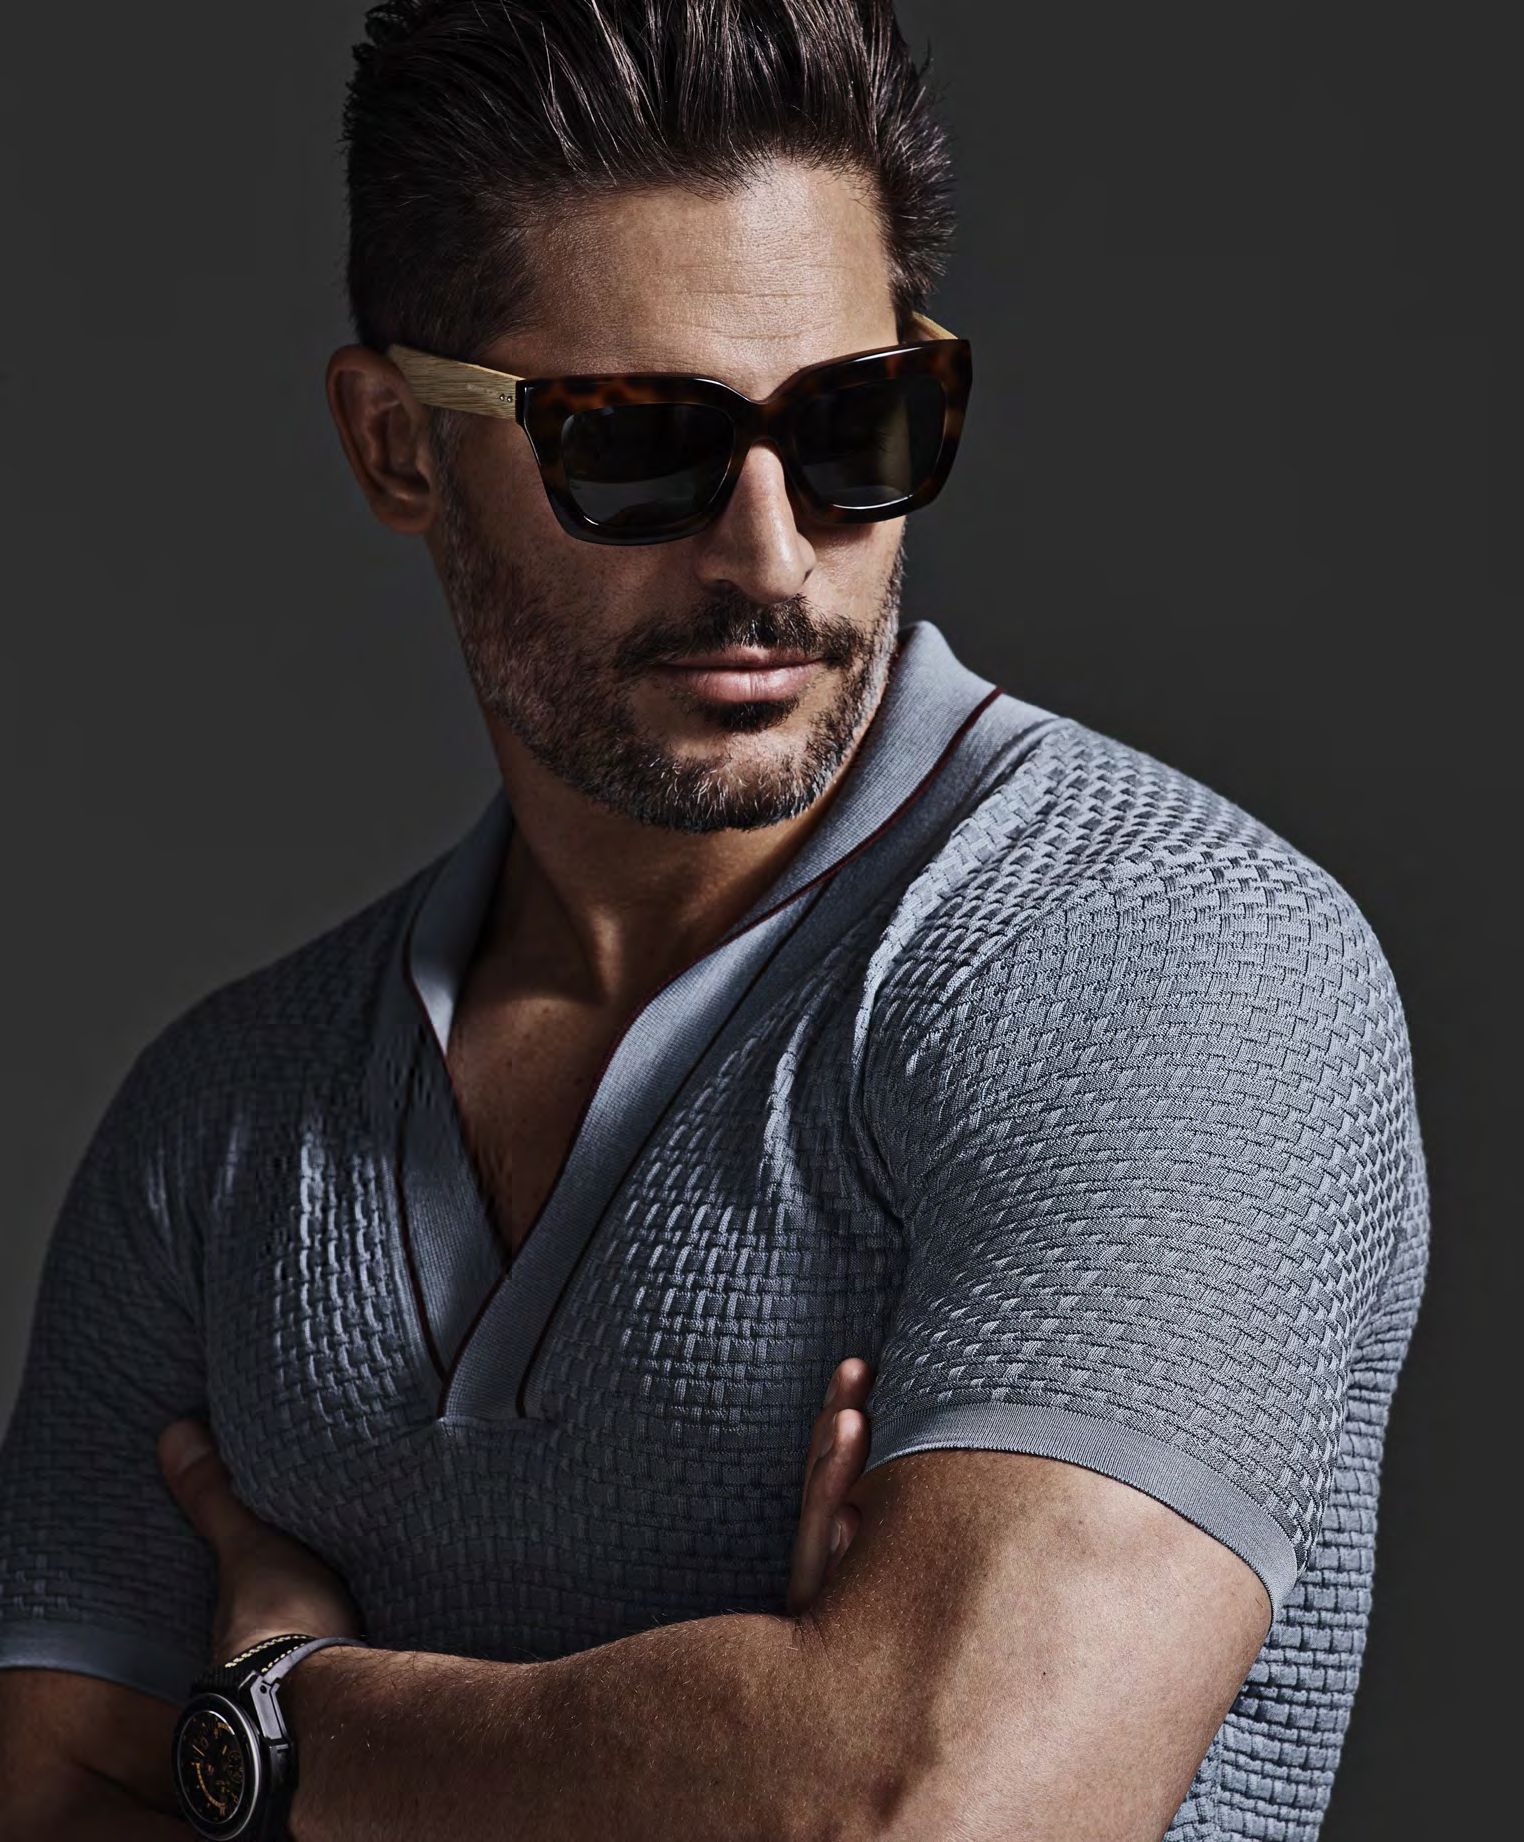 JOE MANGANIELLO by NINO MUNOZ